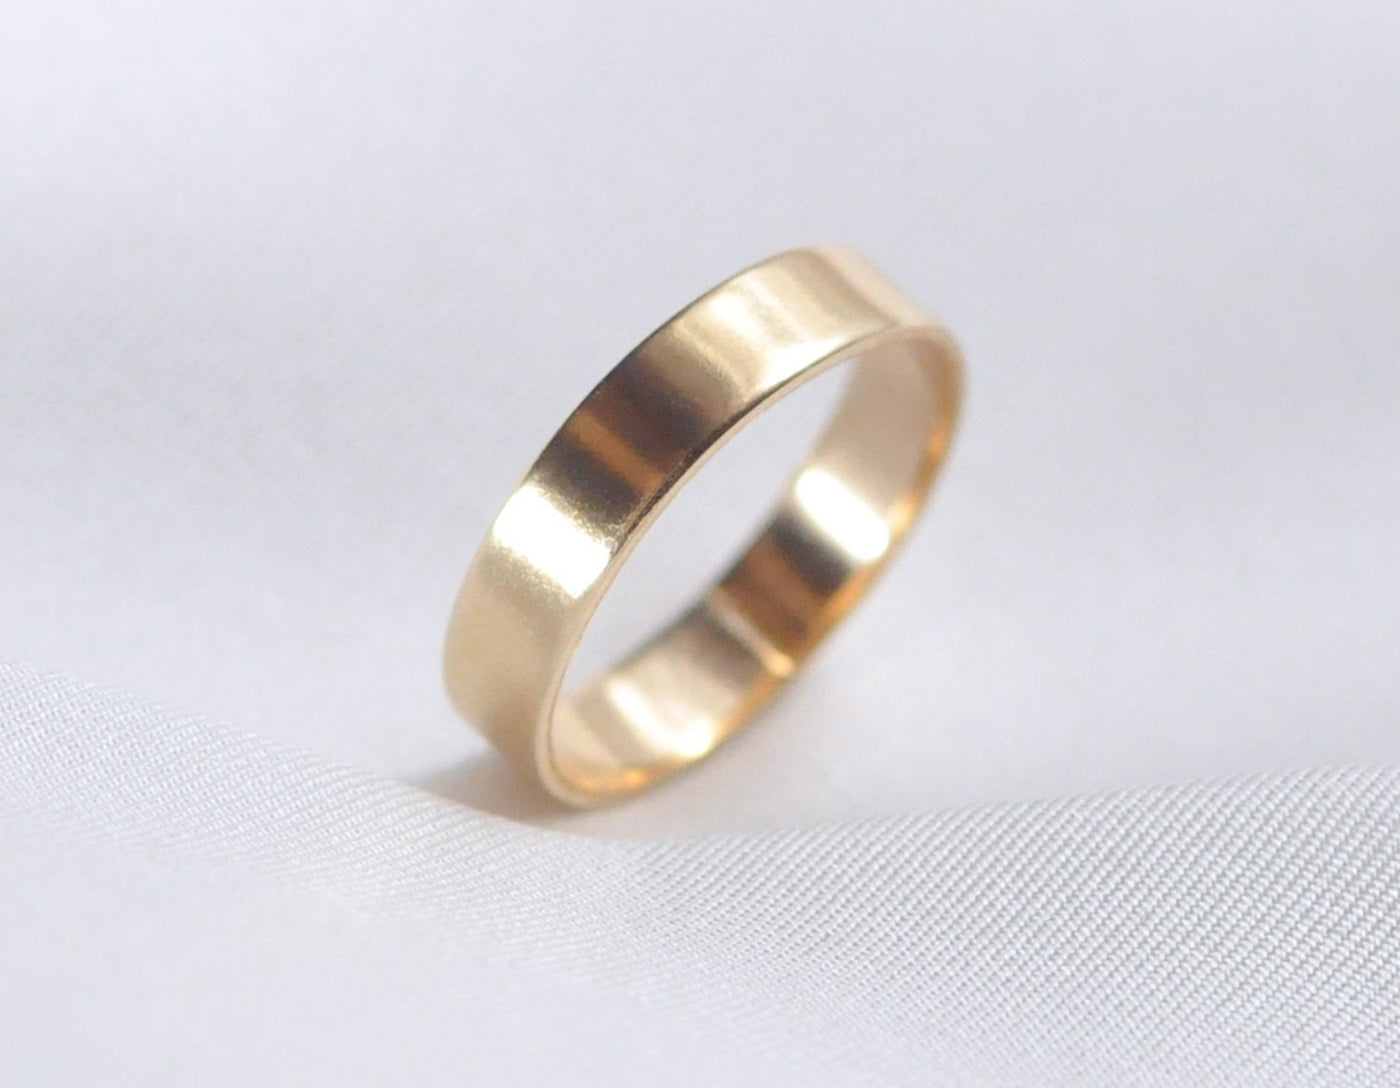 14 karat yellow gold ring, 14k solid gold ring for men, 14 kt gold band unisex